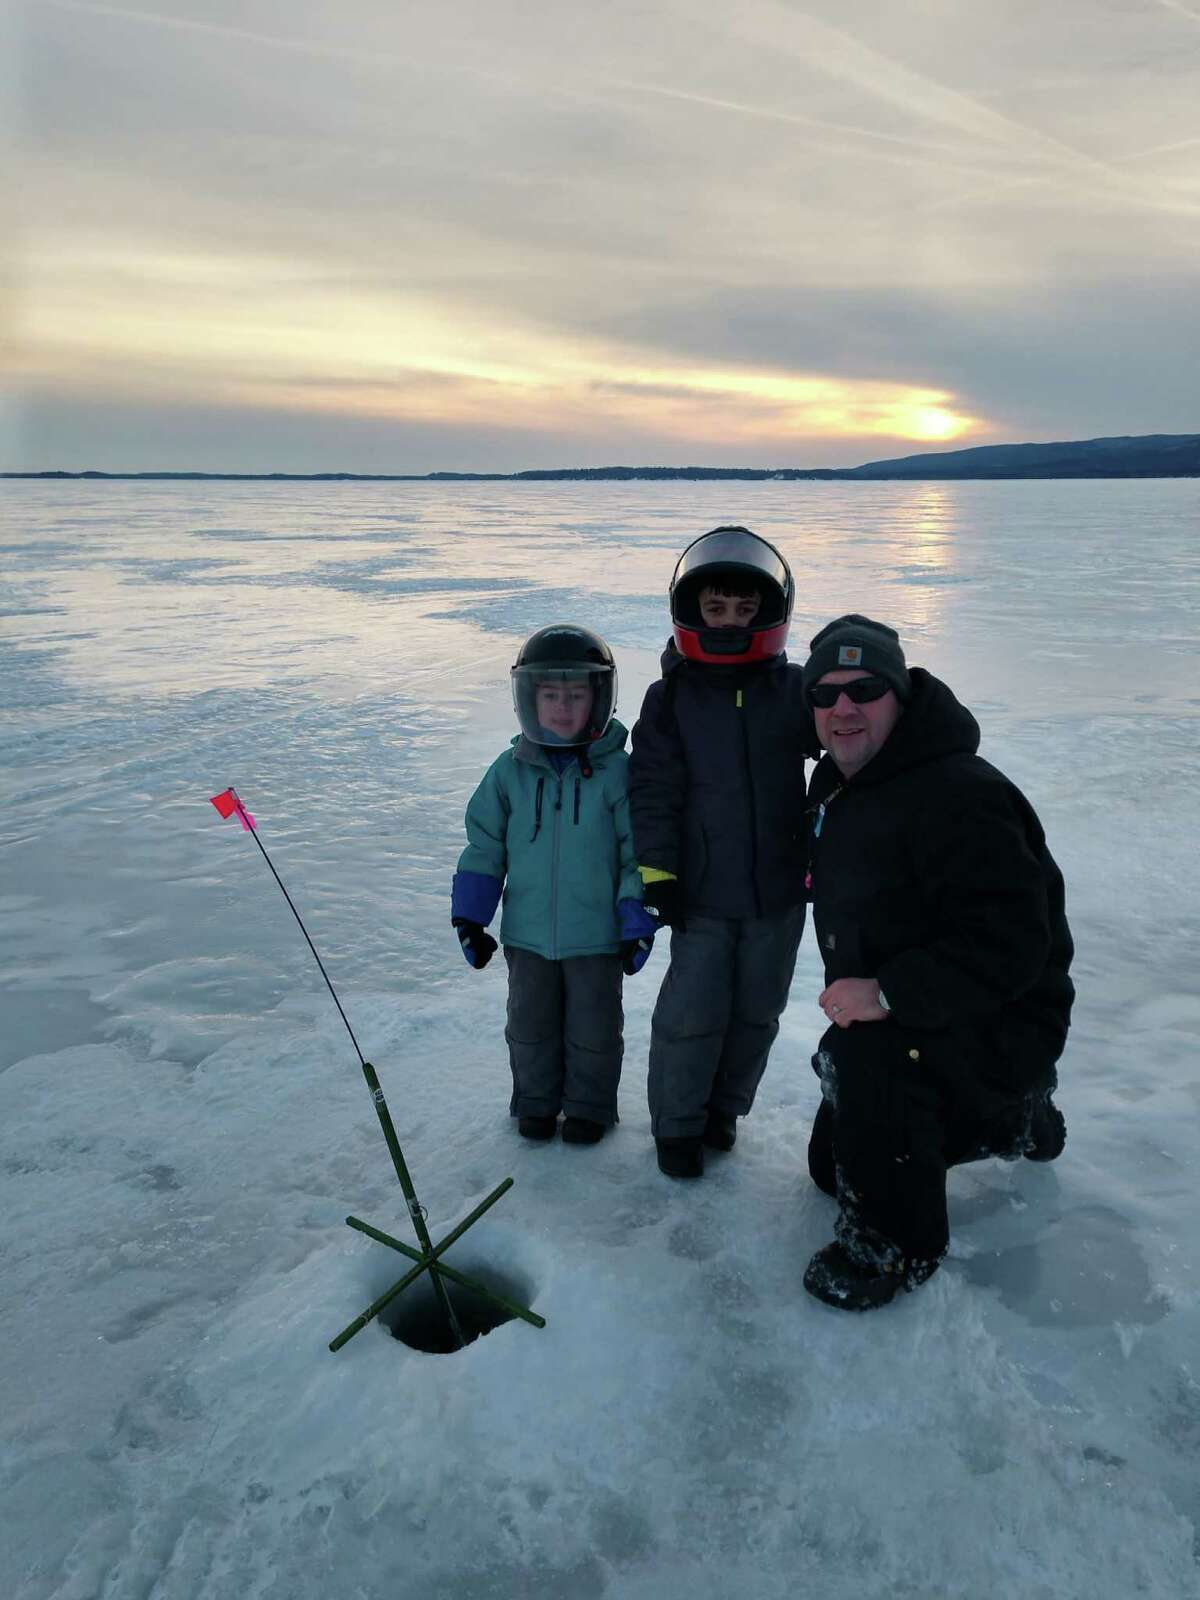 Jason Kemper, right, with his sons Cal and Cole, ice fishing on the Great Sacandaga Lake. (Photo provided)